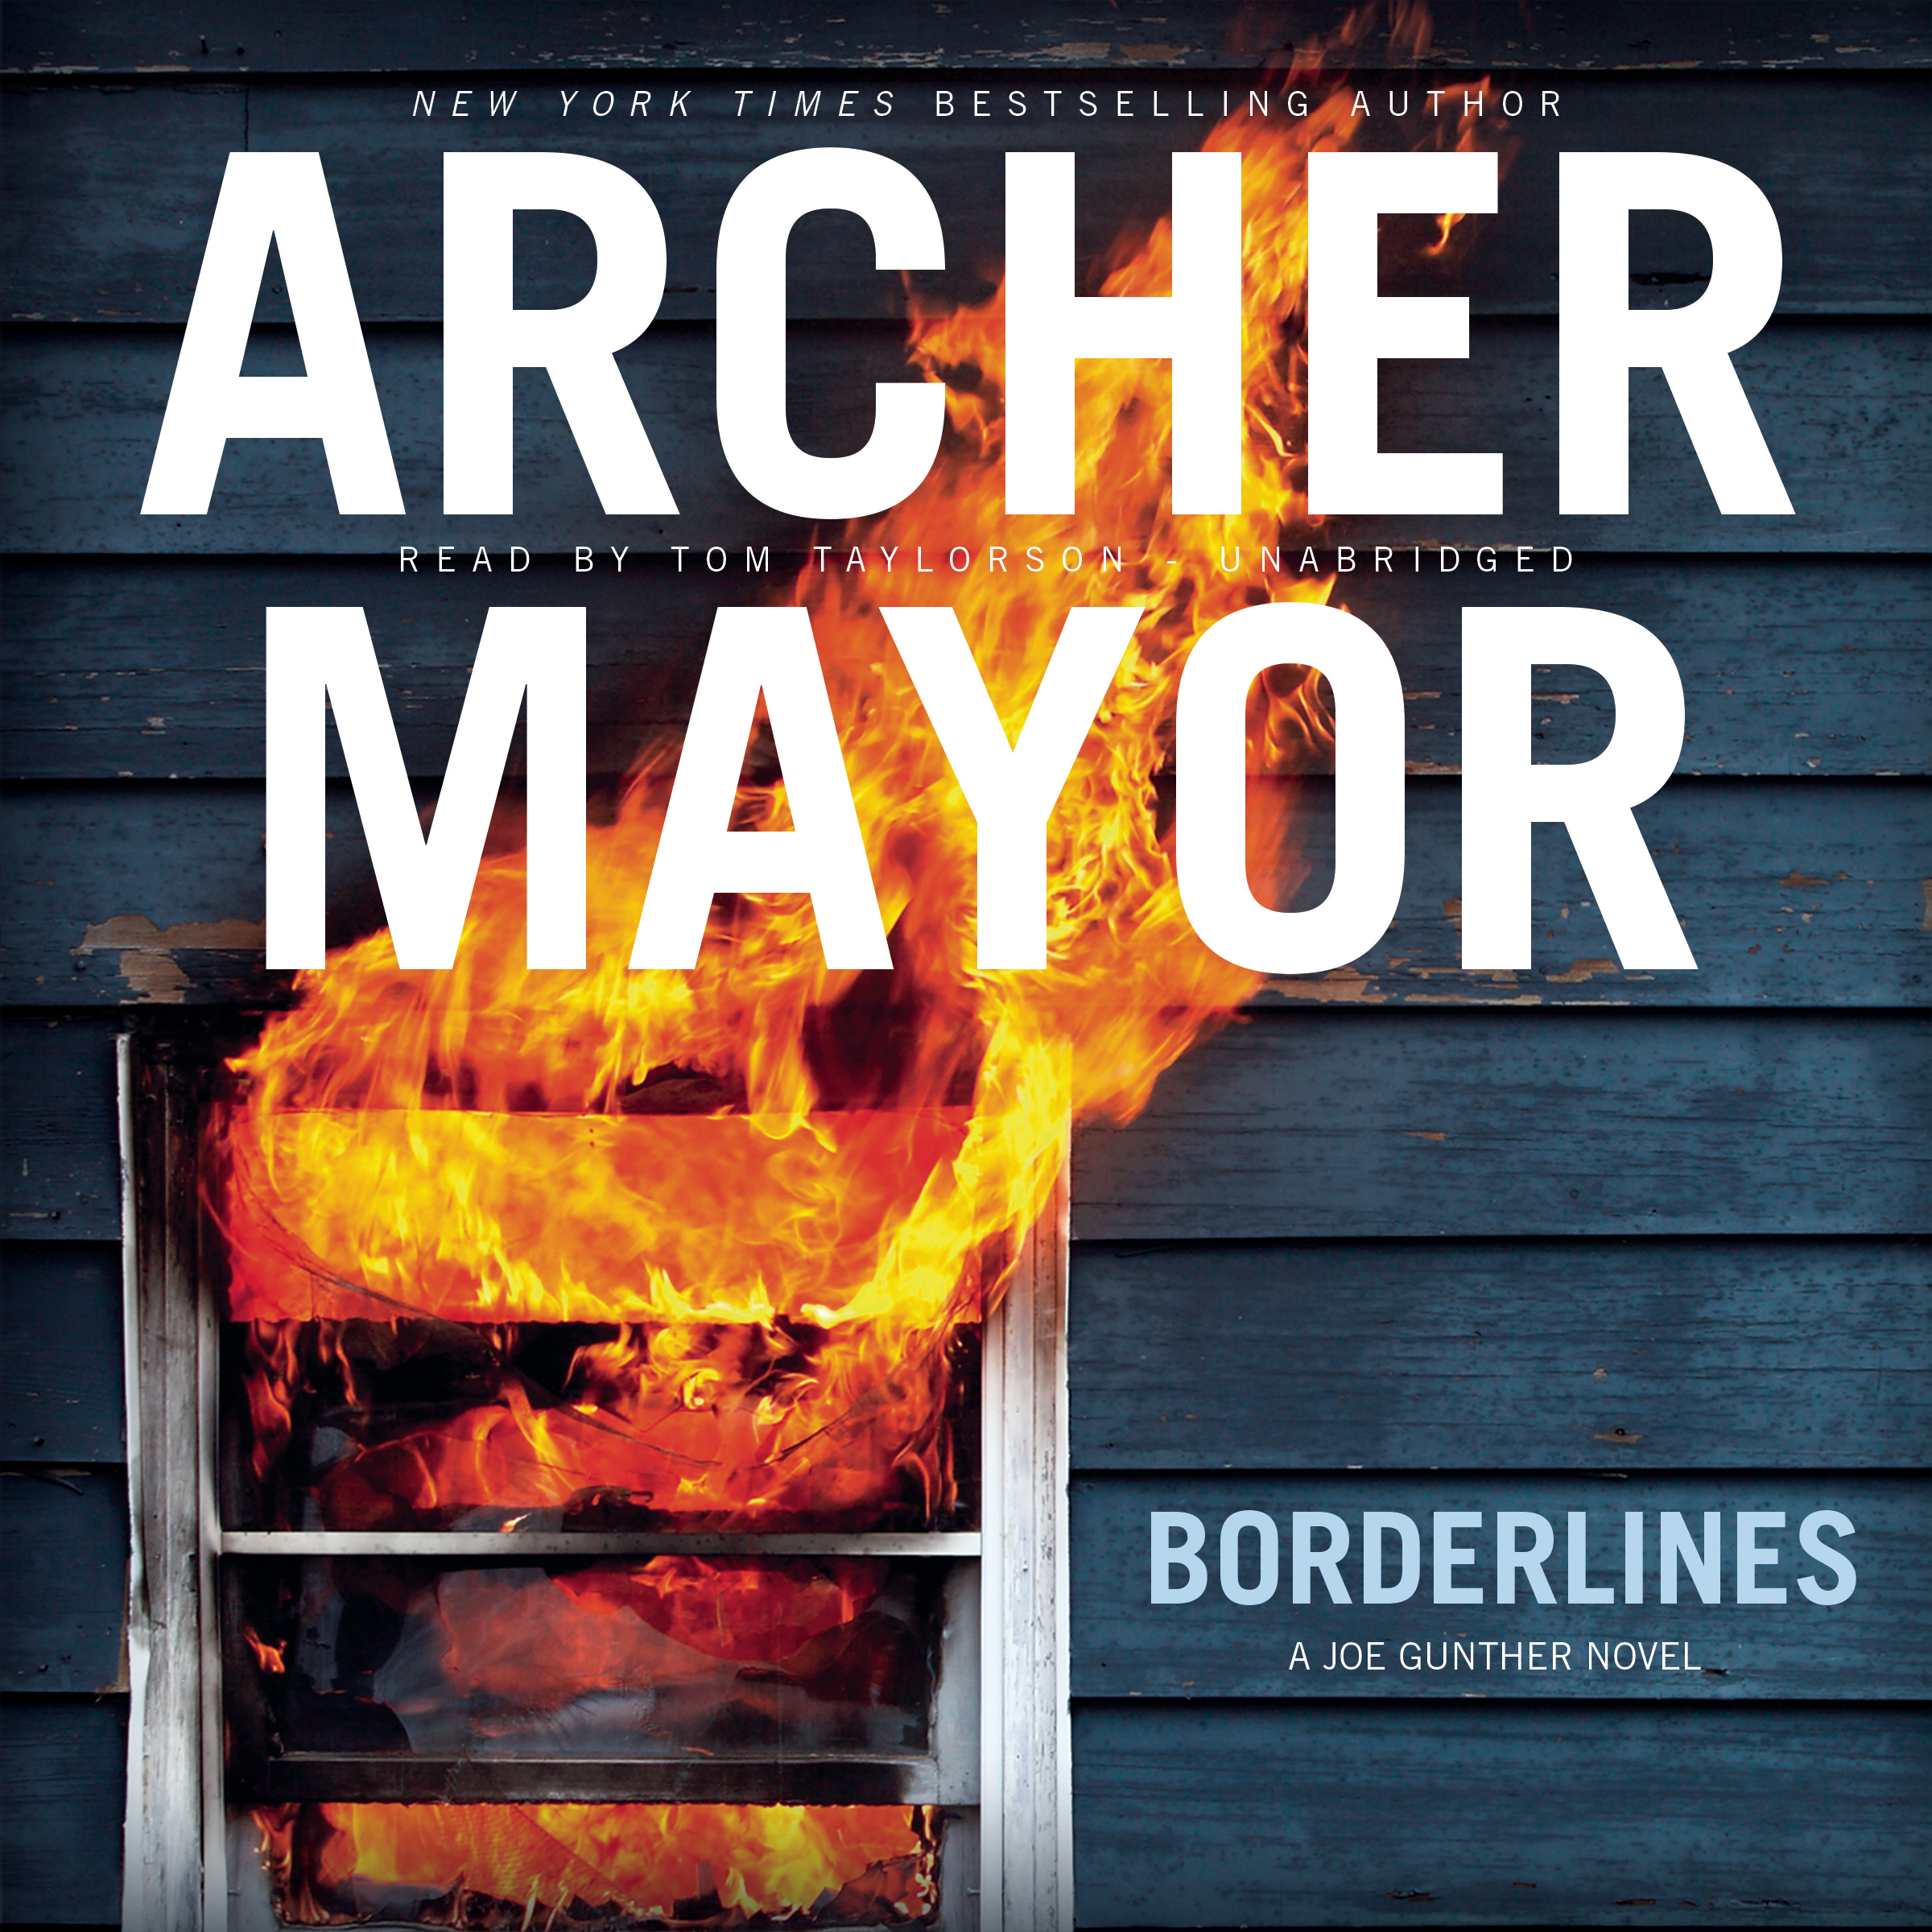 Printable Borderlines Audiobook Cover Art